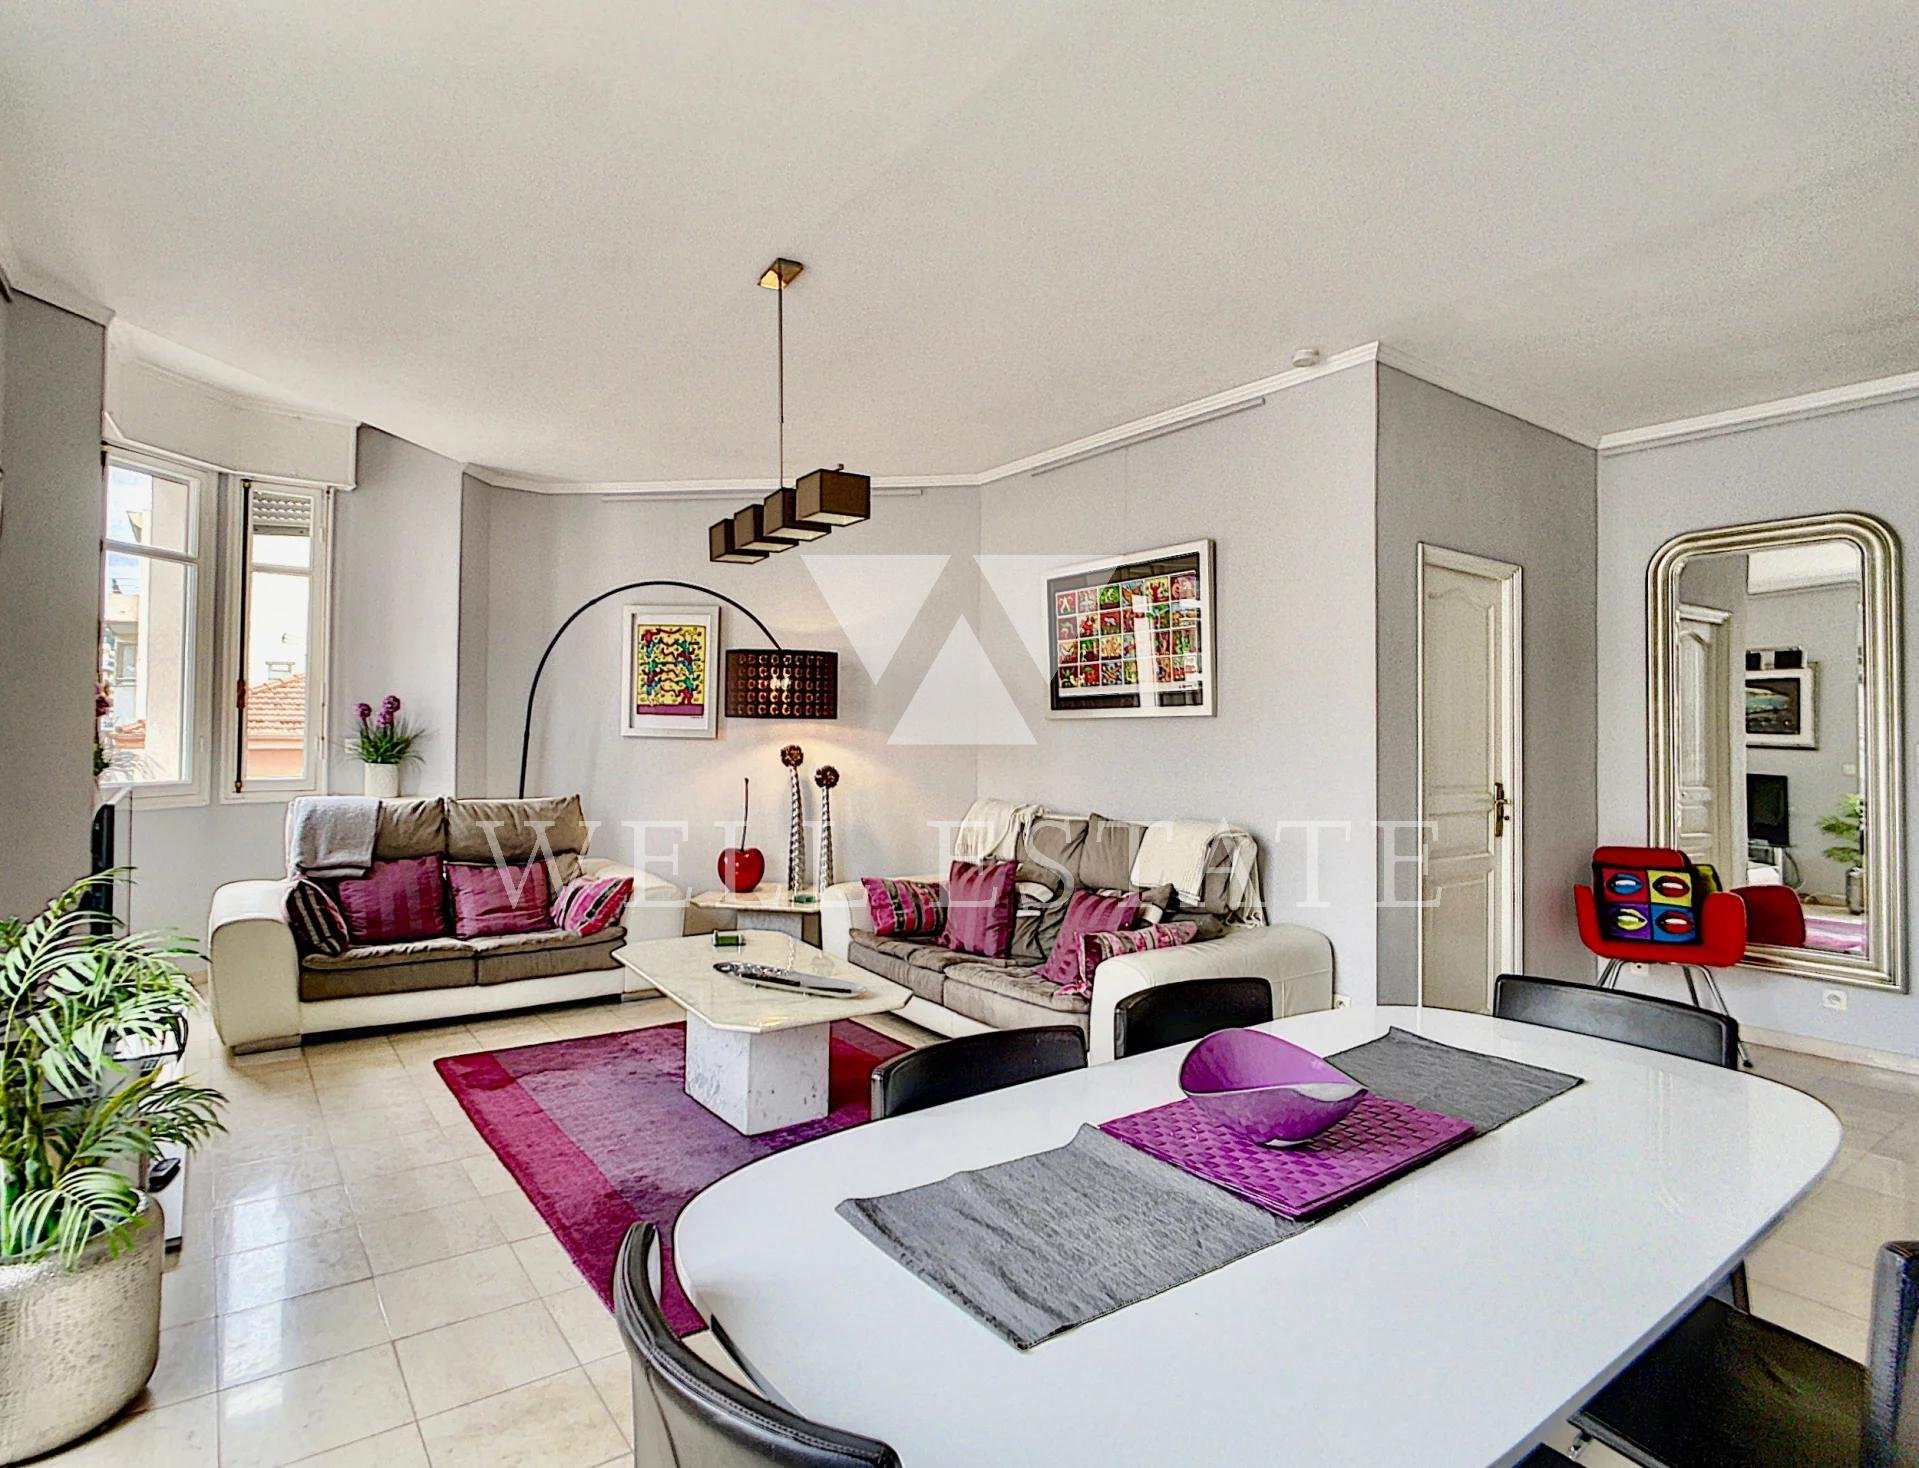 CANNES CROISETTE PALAIS MIRAMAR A 2 BEDROOM APARTMENT OF APPROXIMATELY 100M2 WITH SIDE SEA VIEW